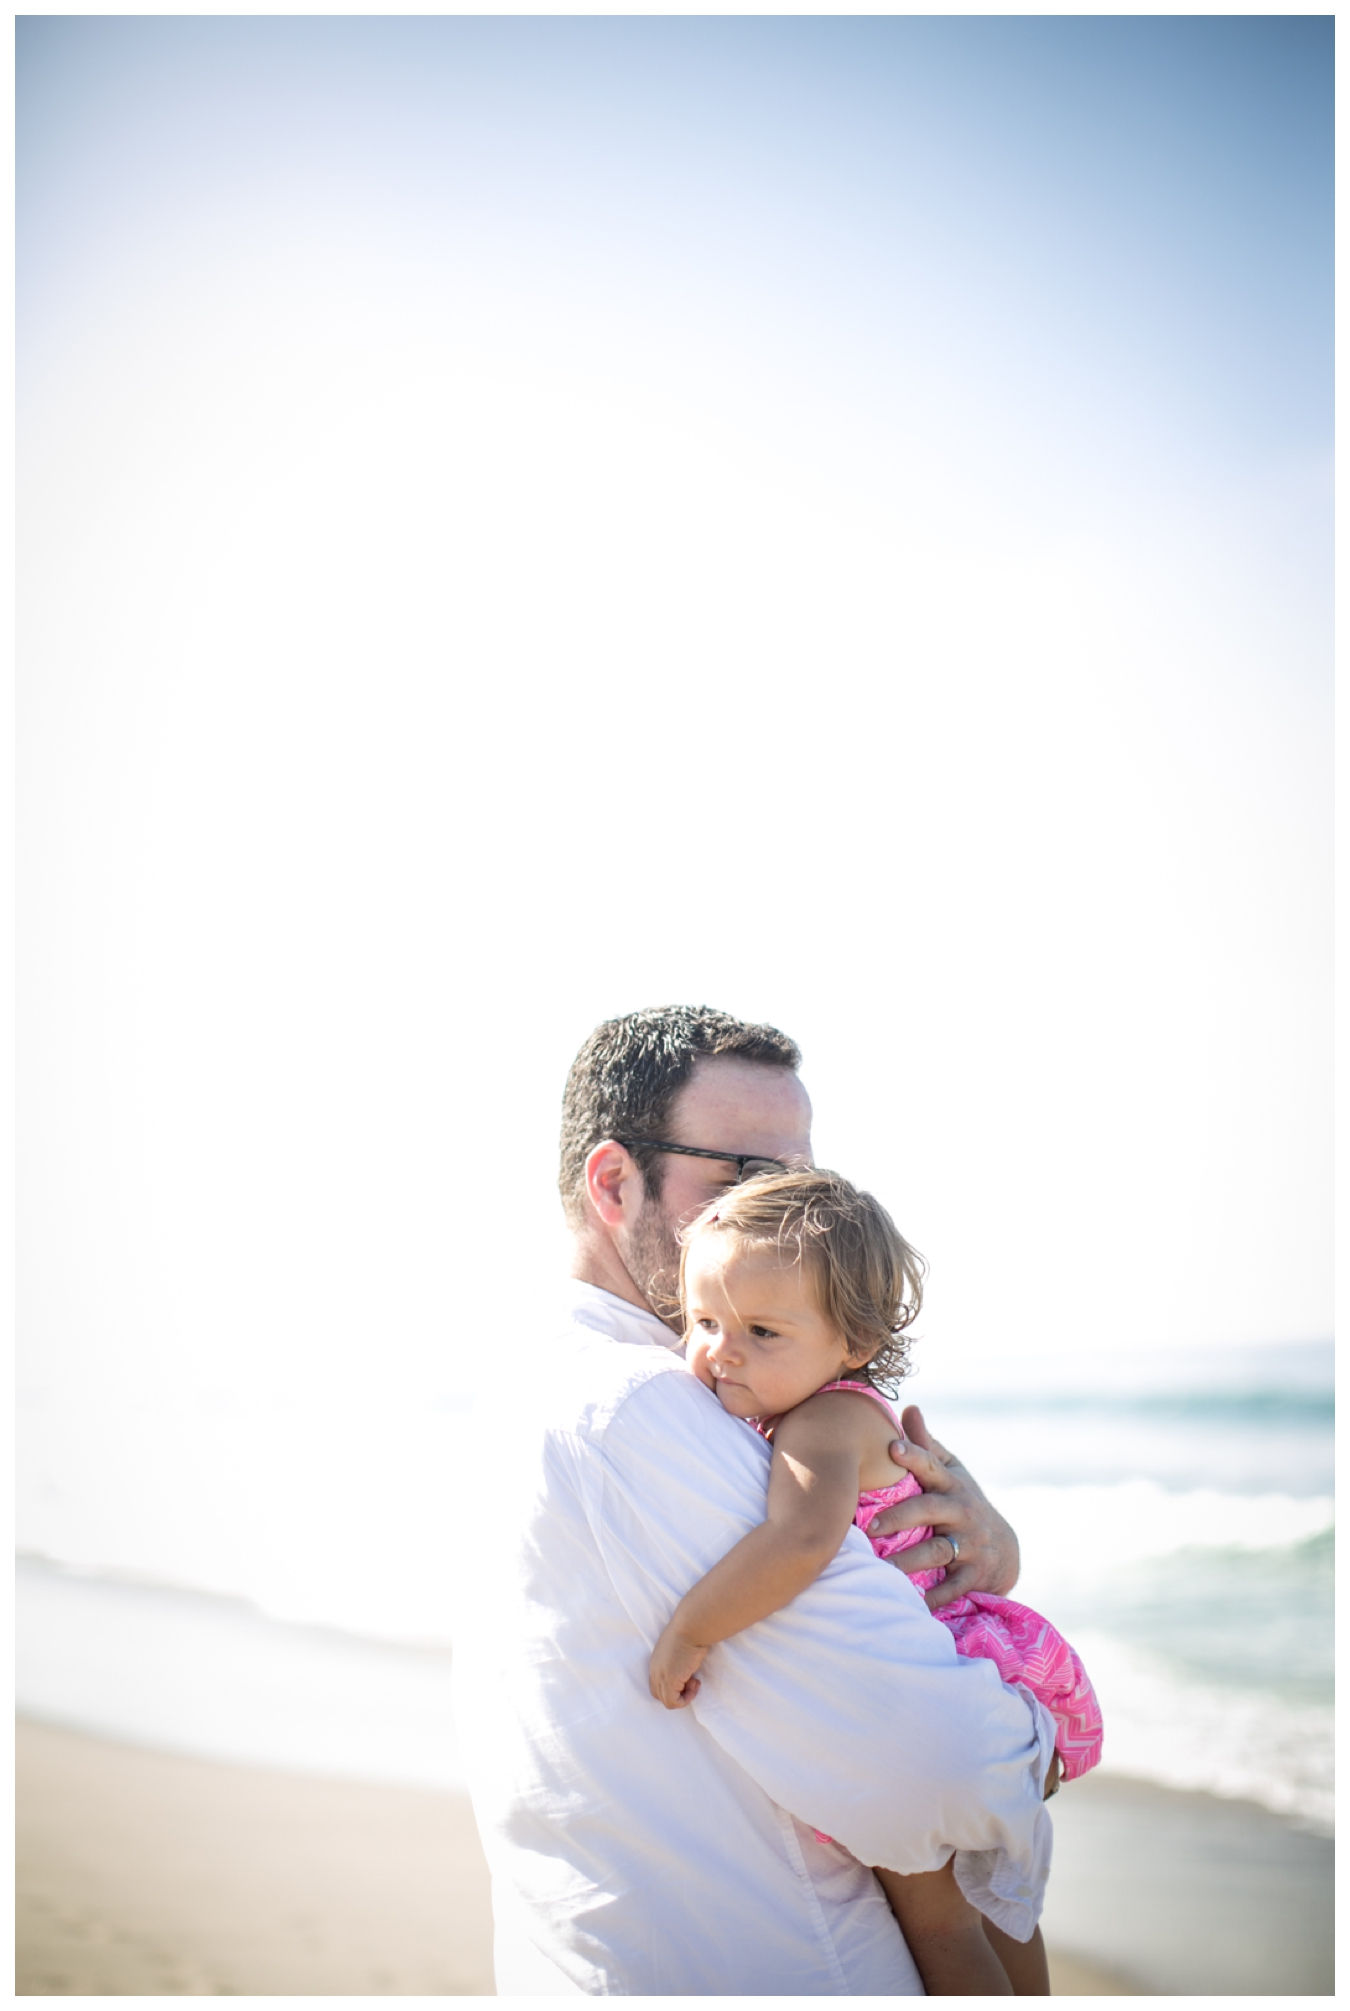 Los Angeles lifestyle family portraits | lily glass